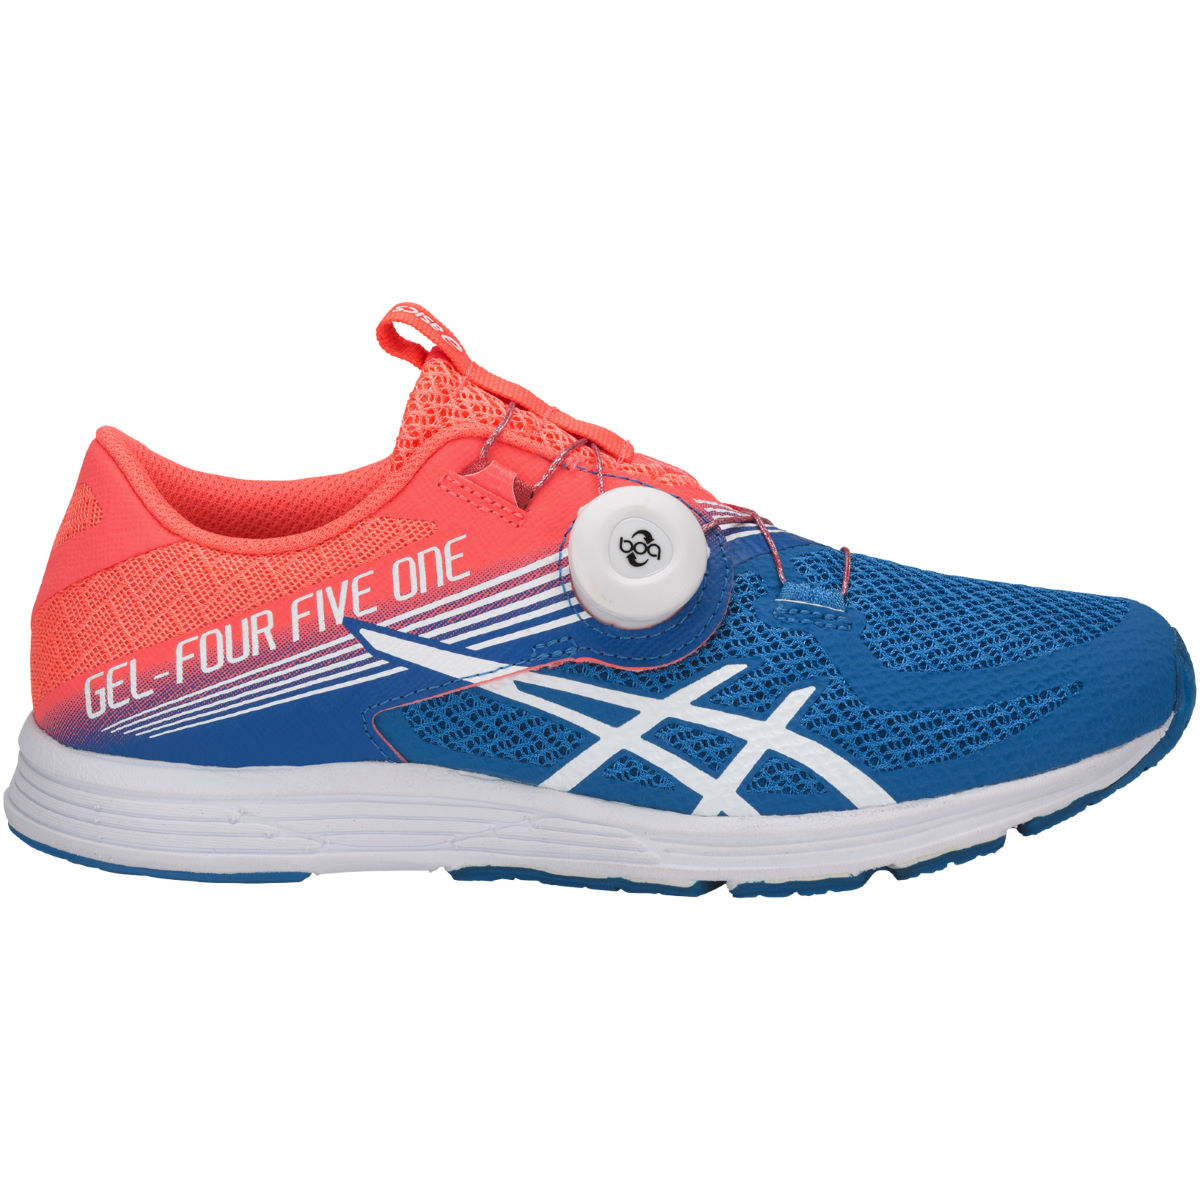 Chaussures Femme Asics Gel-451 - UK 5 FLASH CORAL/WHITE/DI